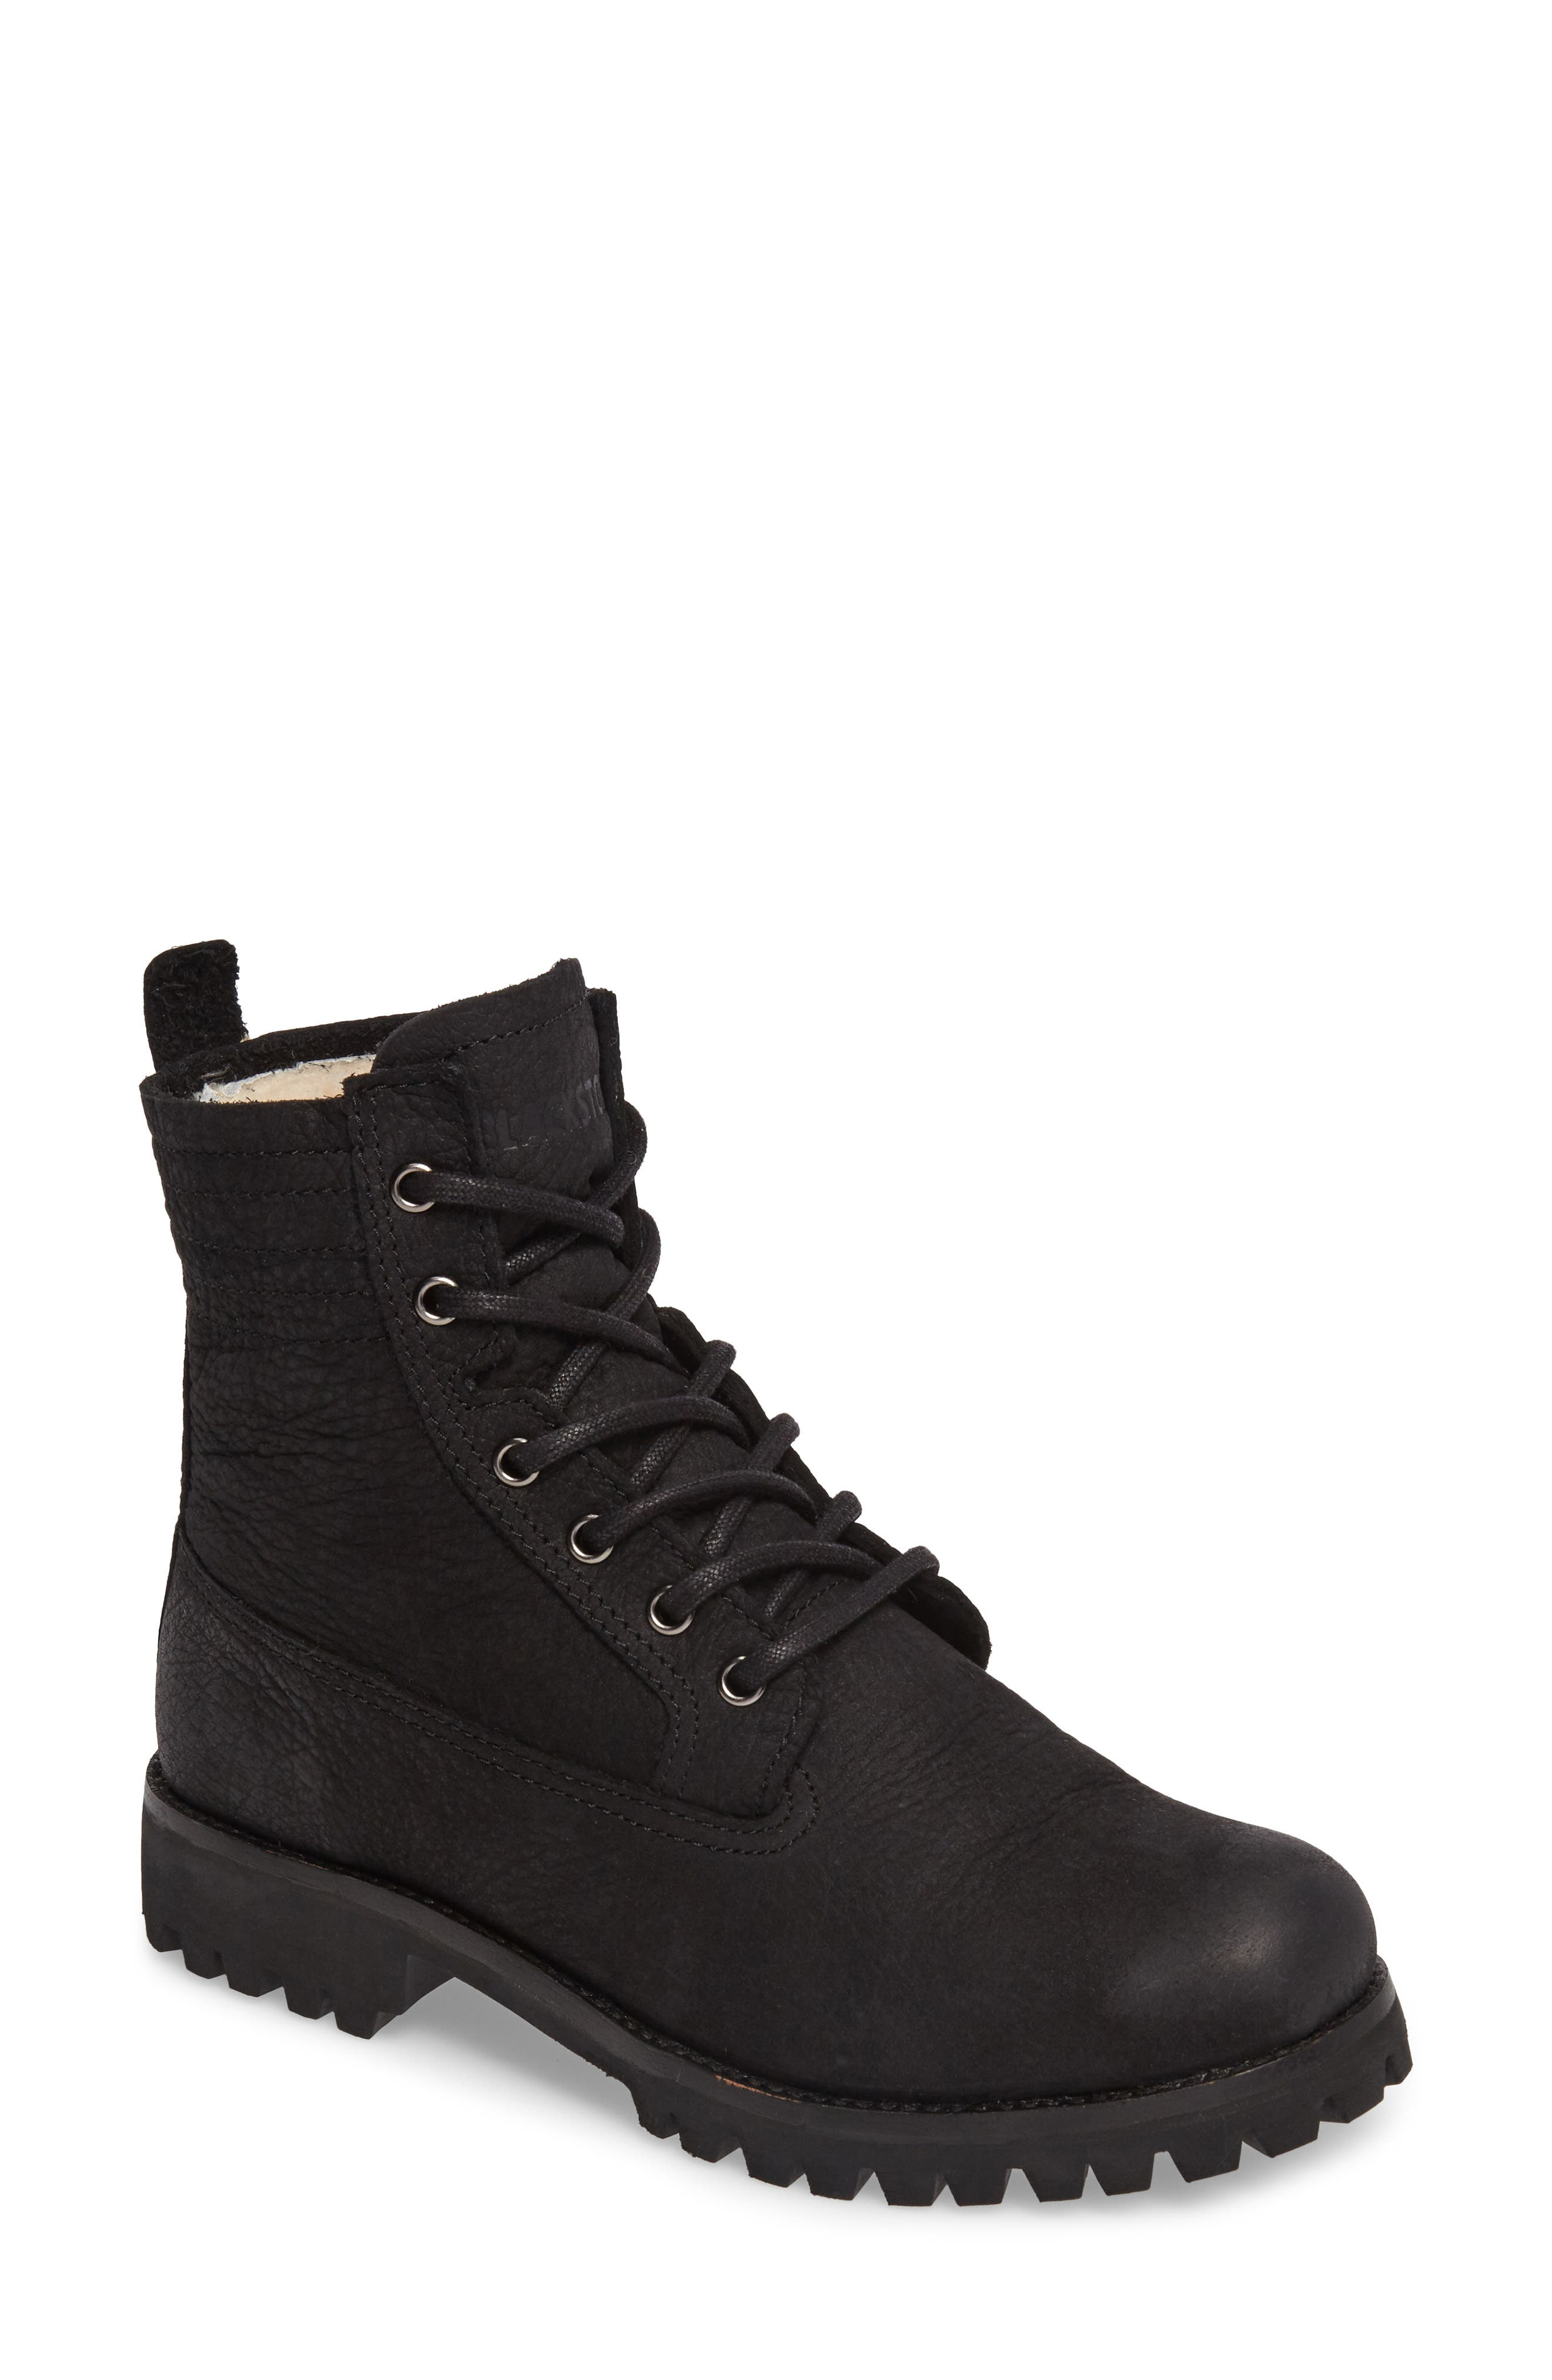 OL22 Lace-Up Boot with Genuine Shearling Lining,                             Main thumbnail 1, color,                             BLACK LEATHER